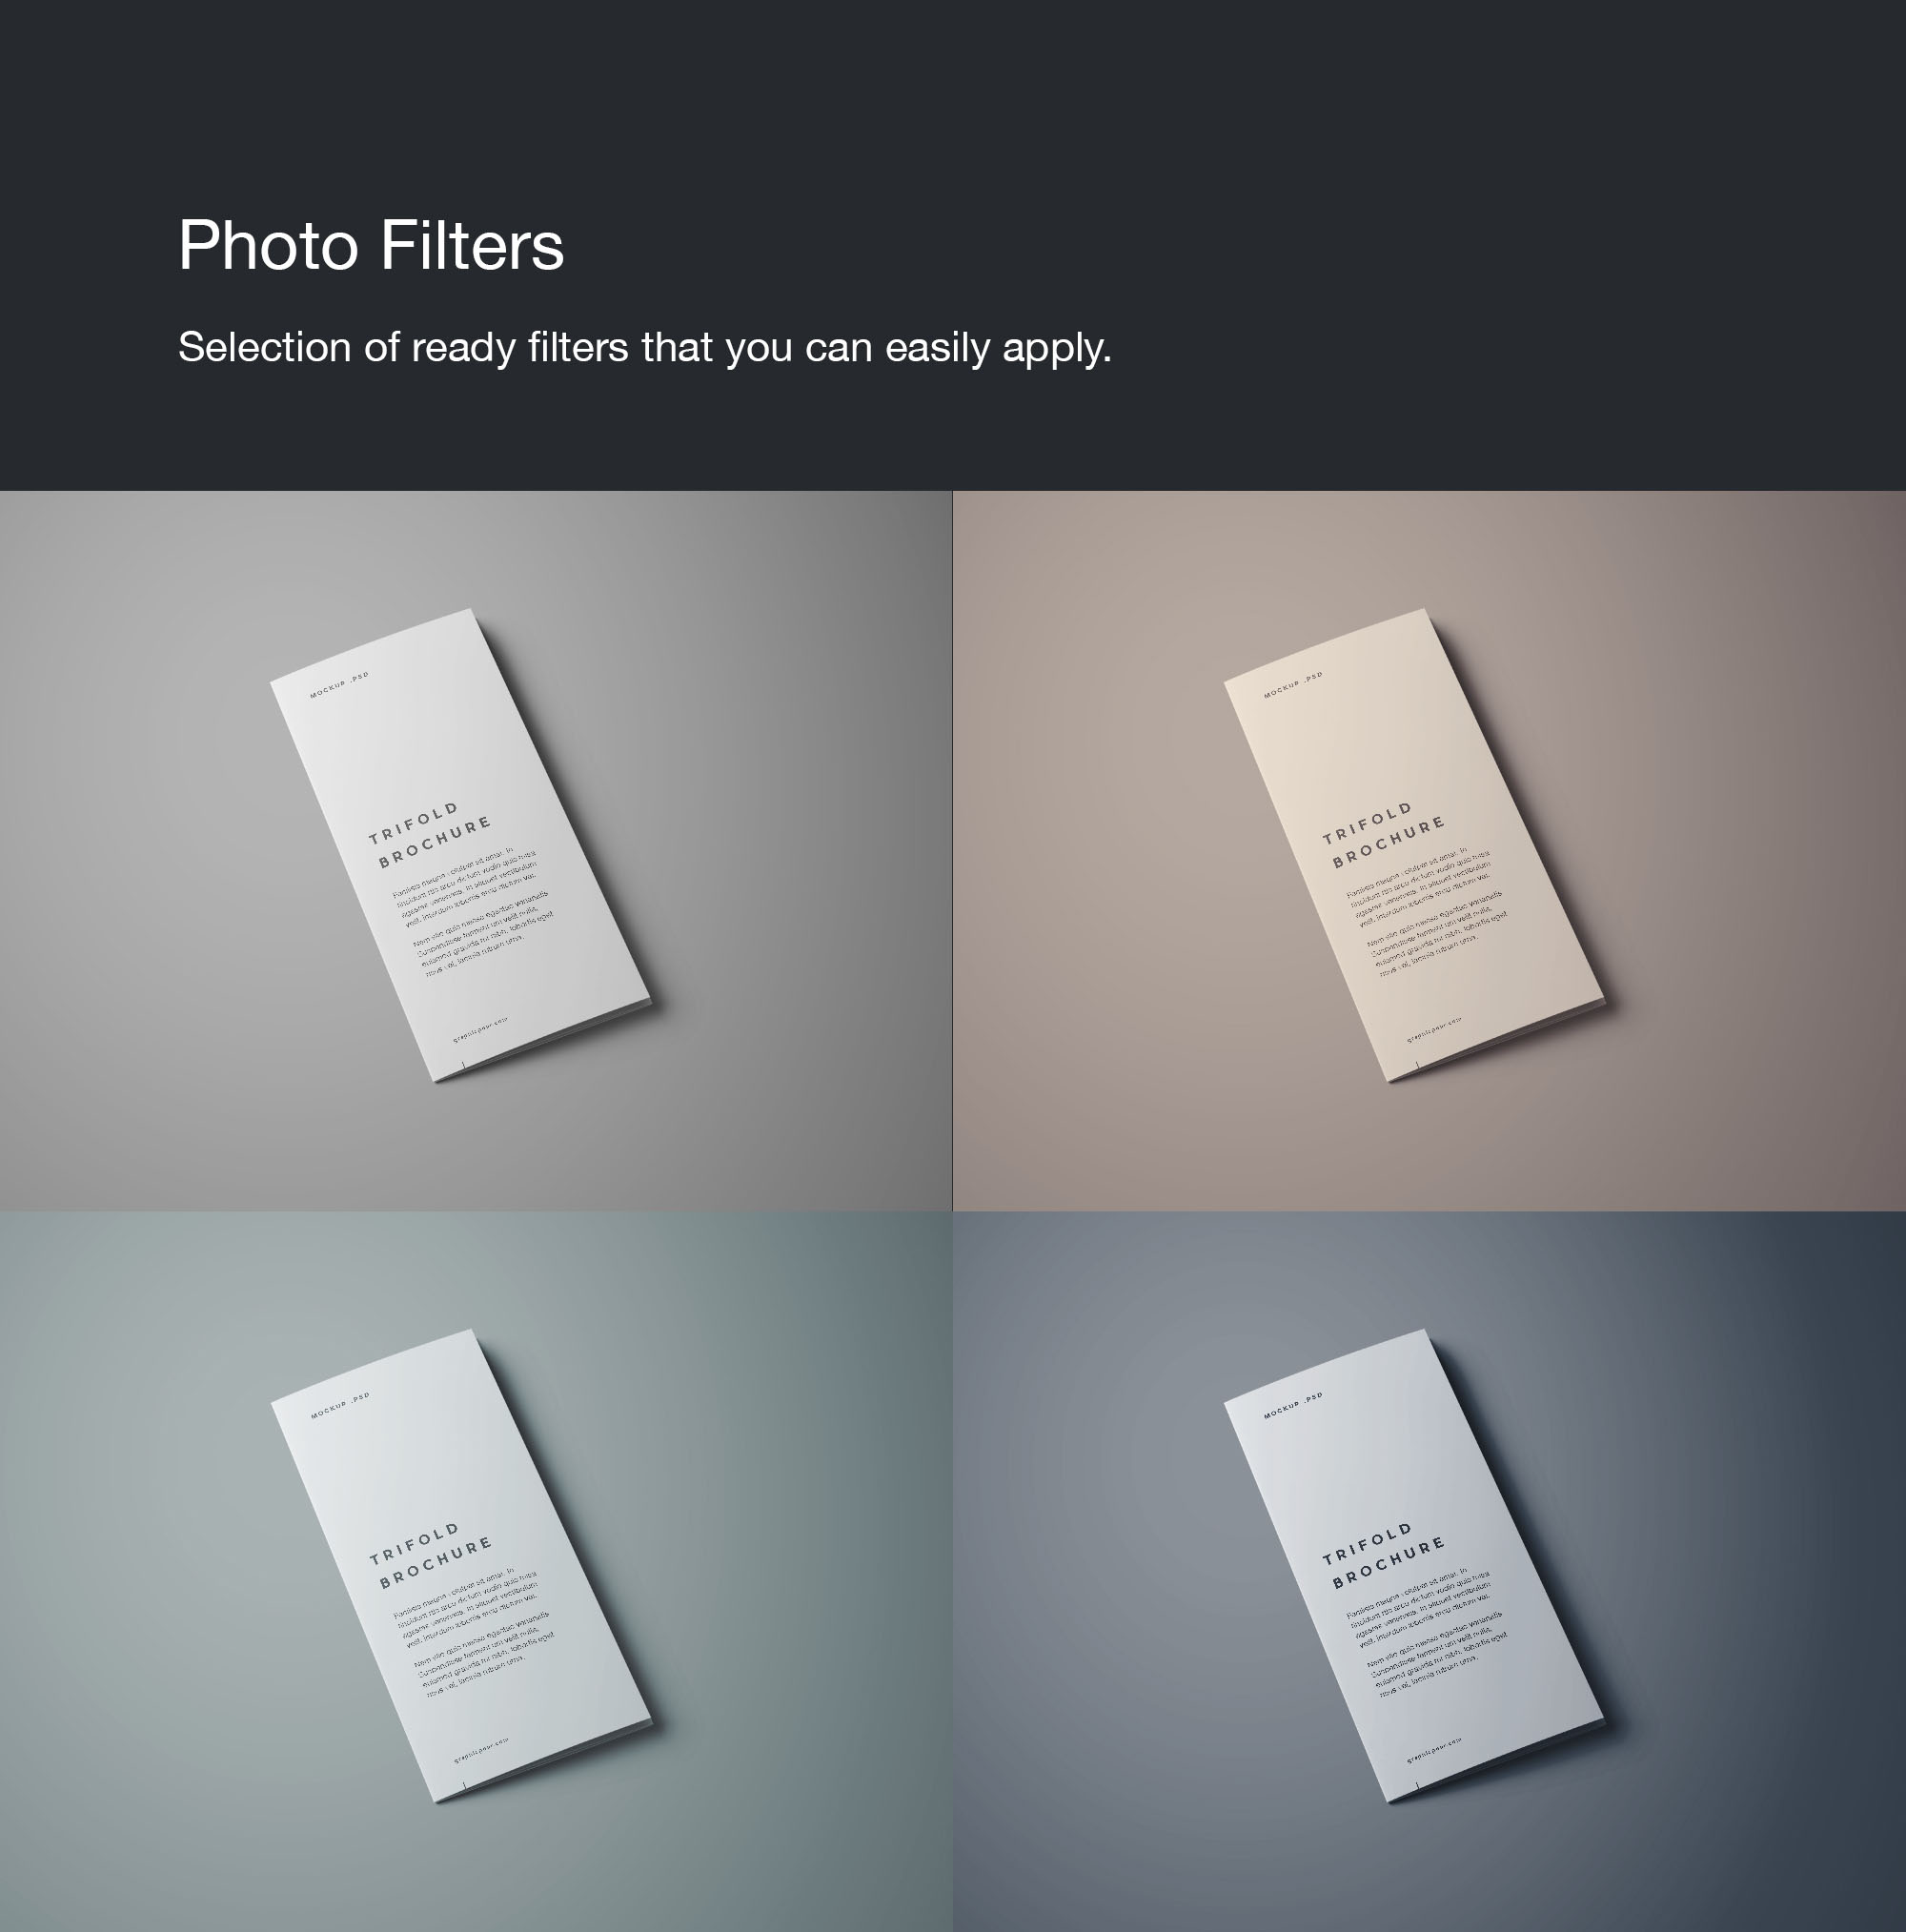 TriFold Brochure Mockup filters